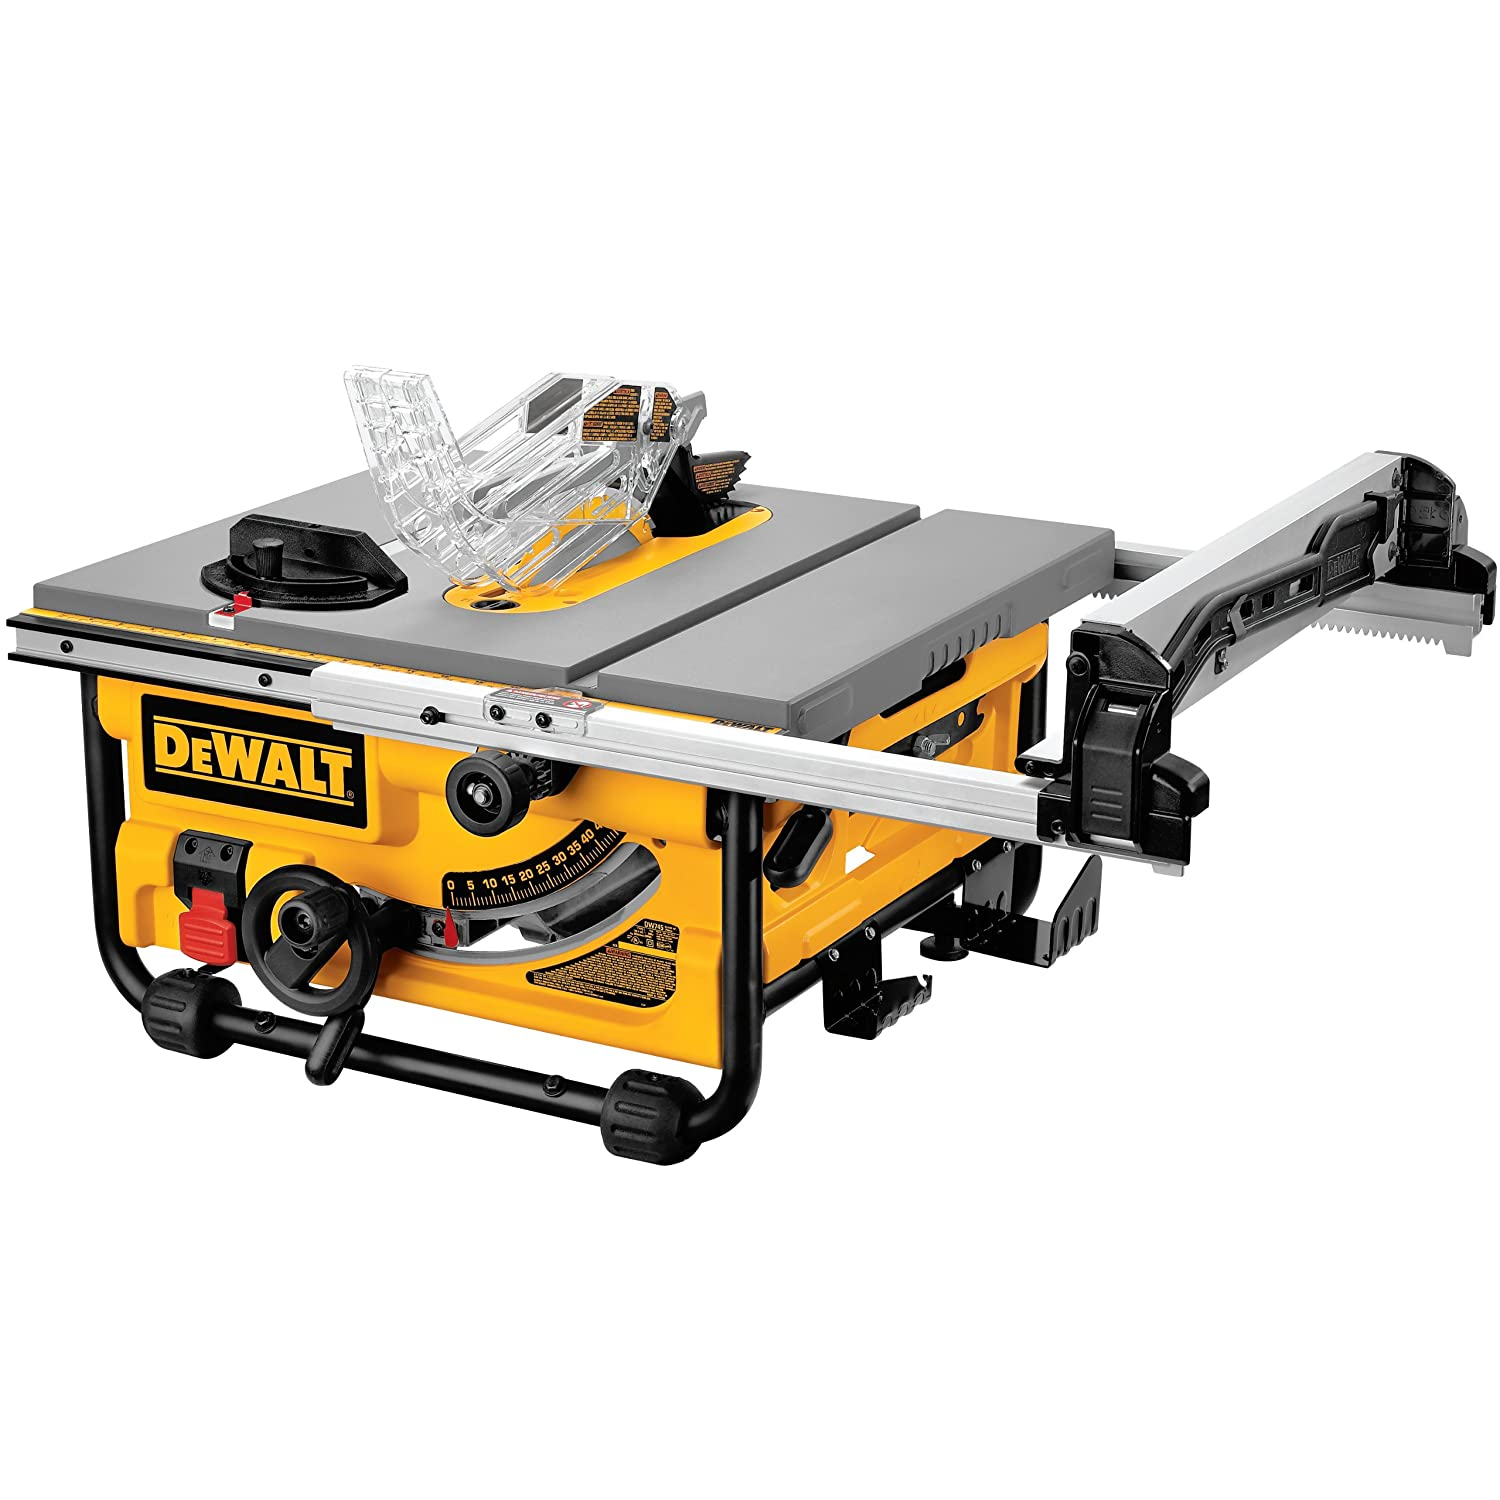 81pjYJ9LxIL._SL1500_ dewalt dw745 10 inch compact job site table saw with 20 inch max  at soozxer.org